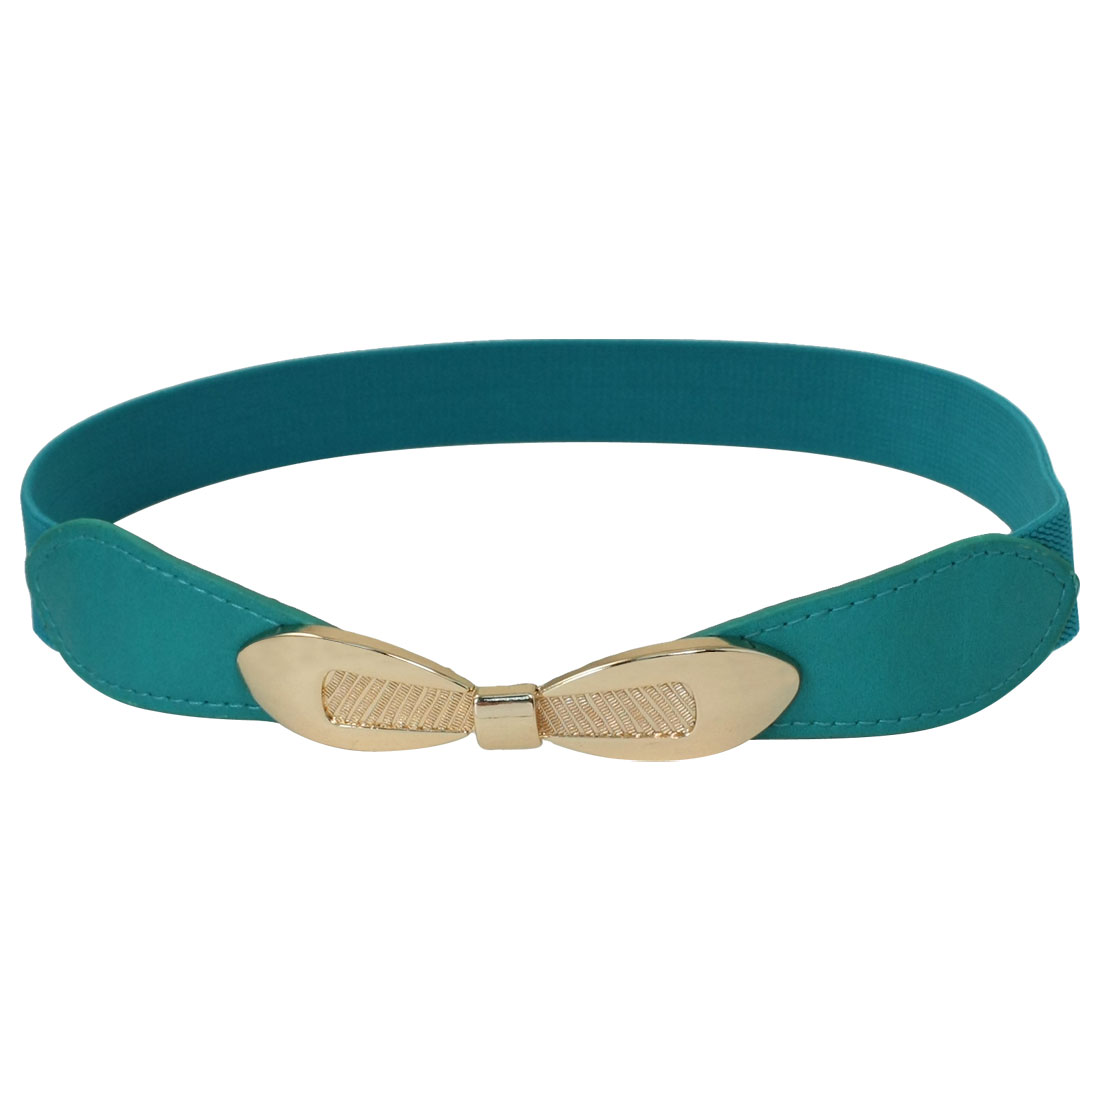 Ladies Bowknot Shaped Metal Interlocking Buckle Stretchy Waist Belt Teal